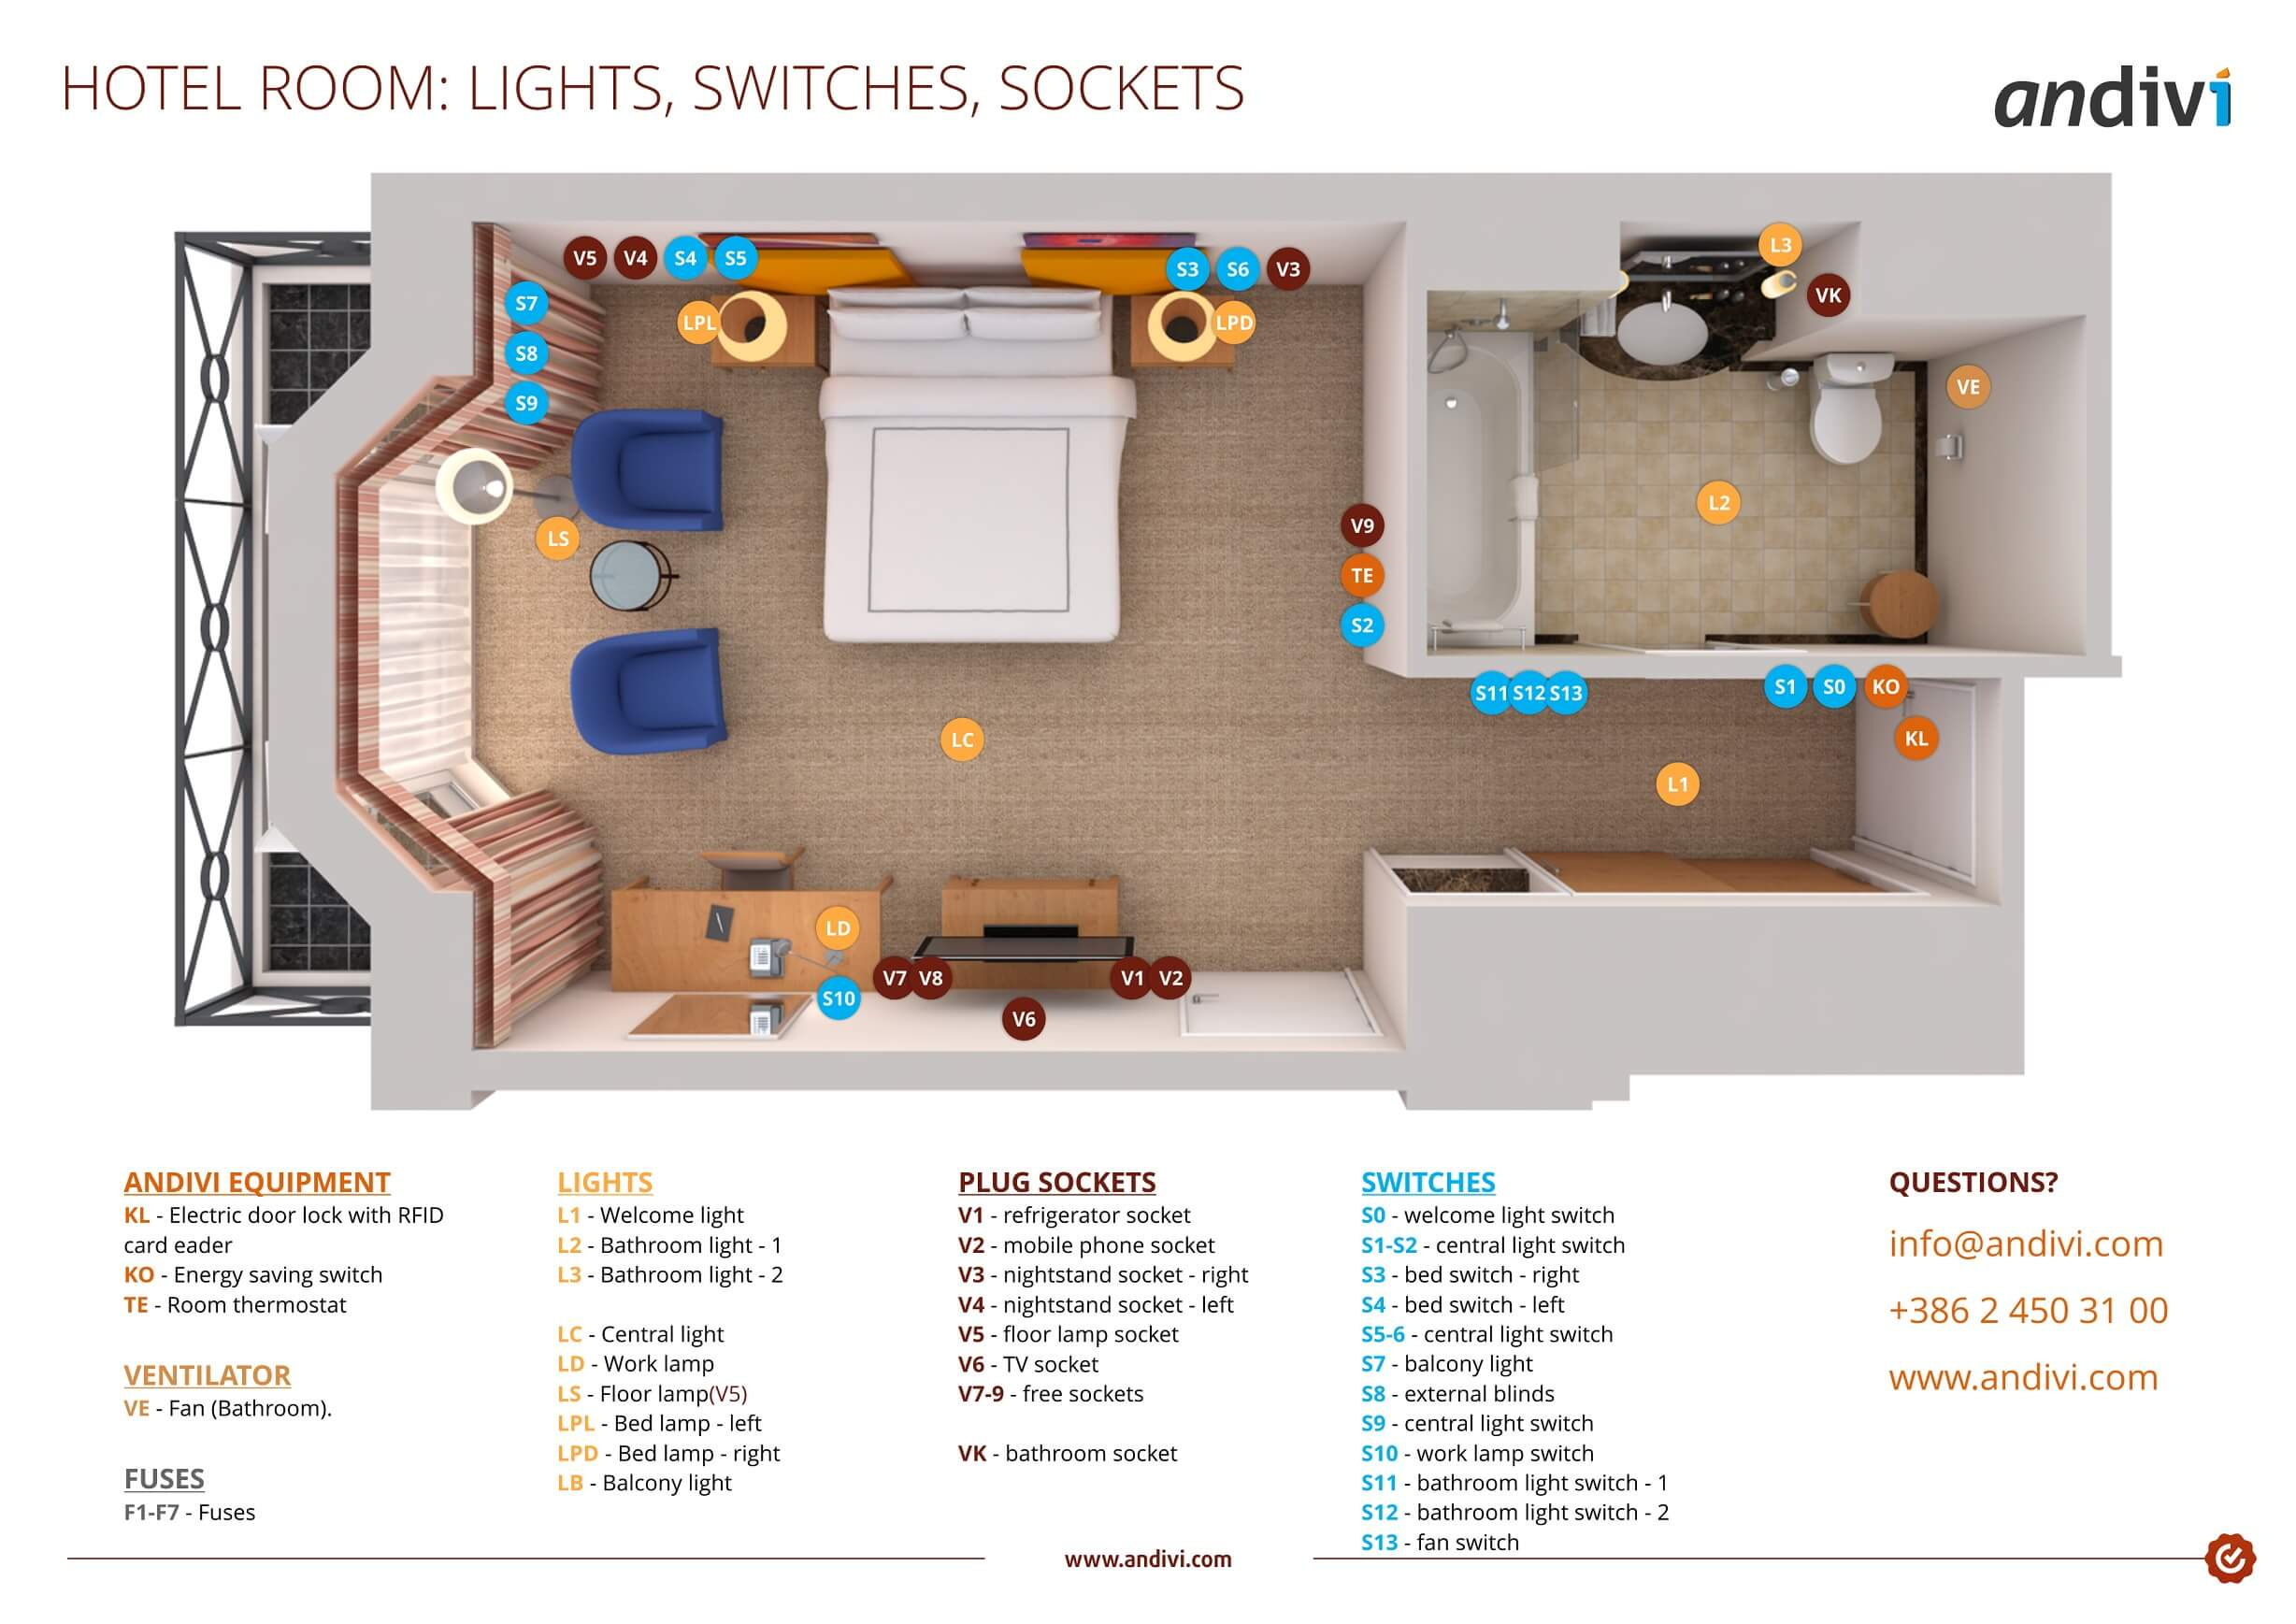 Electrical Installations Layout Plan For A Typical Hotel Residential Wiring Checklist Installation Room Lights Sockets Switches